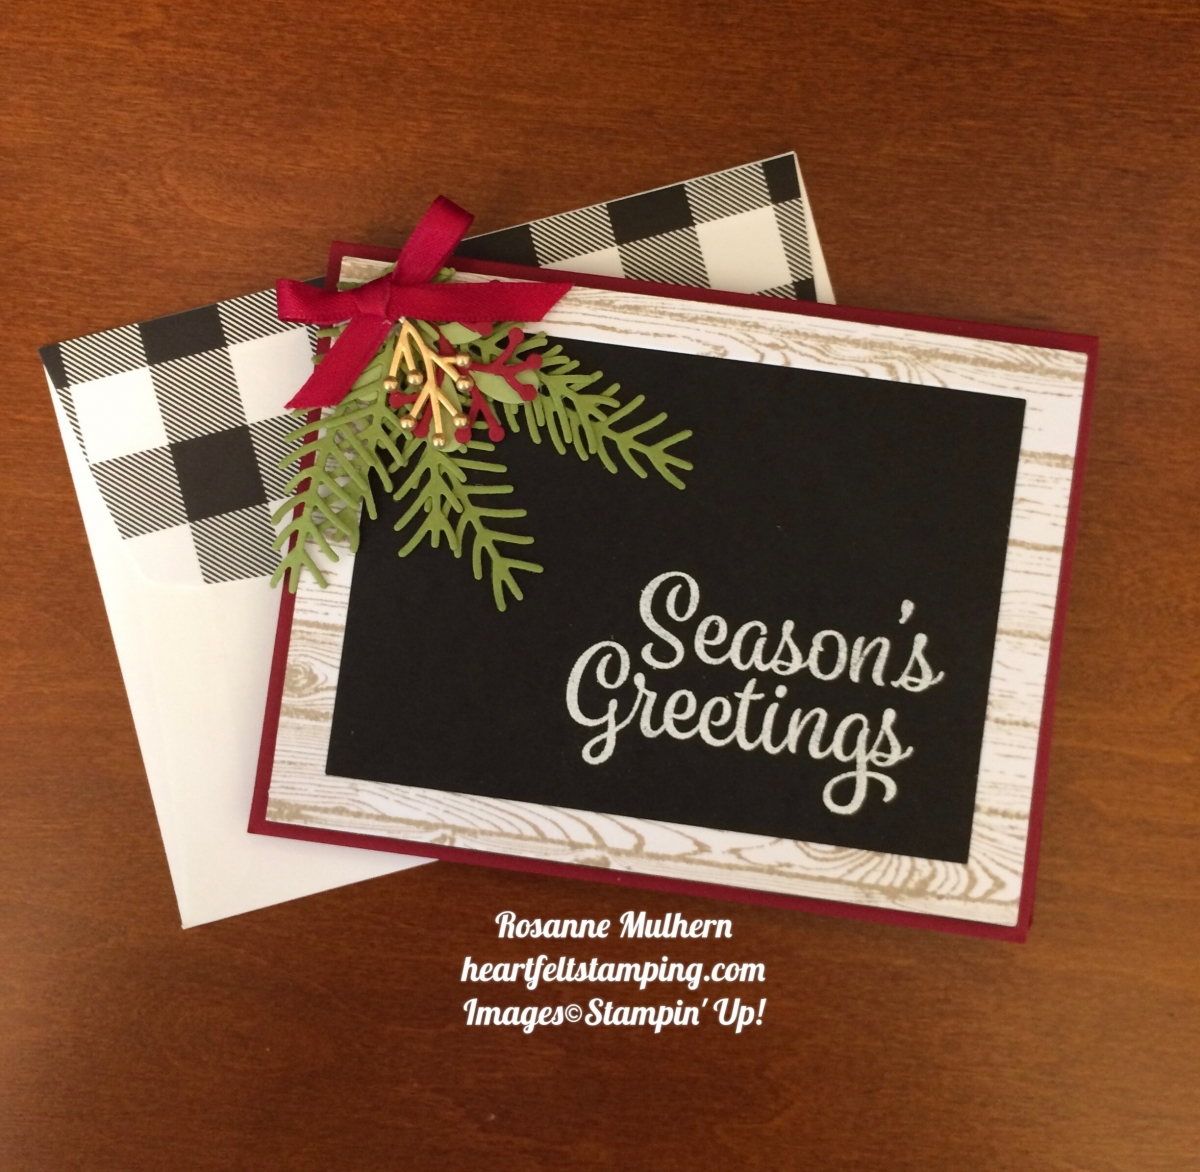 Stampin Up Snowflake Sentiments Christmas Card Rosanne Mulhern